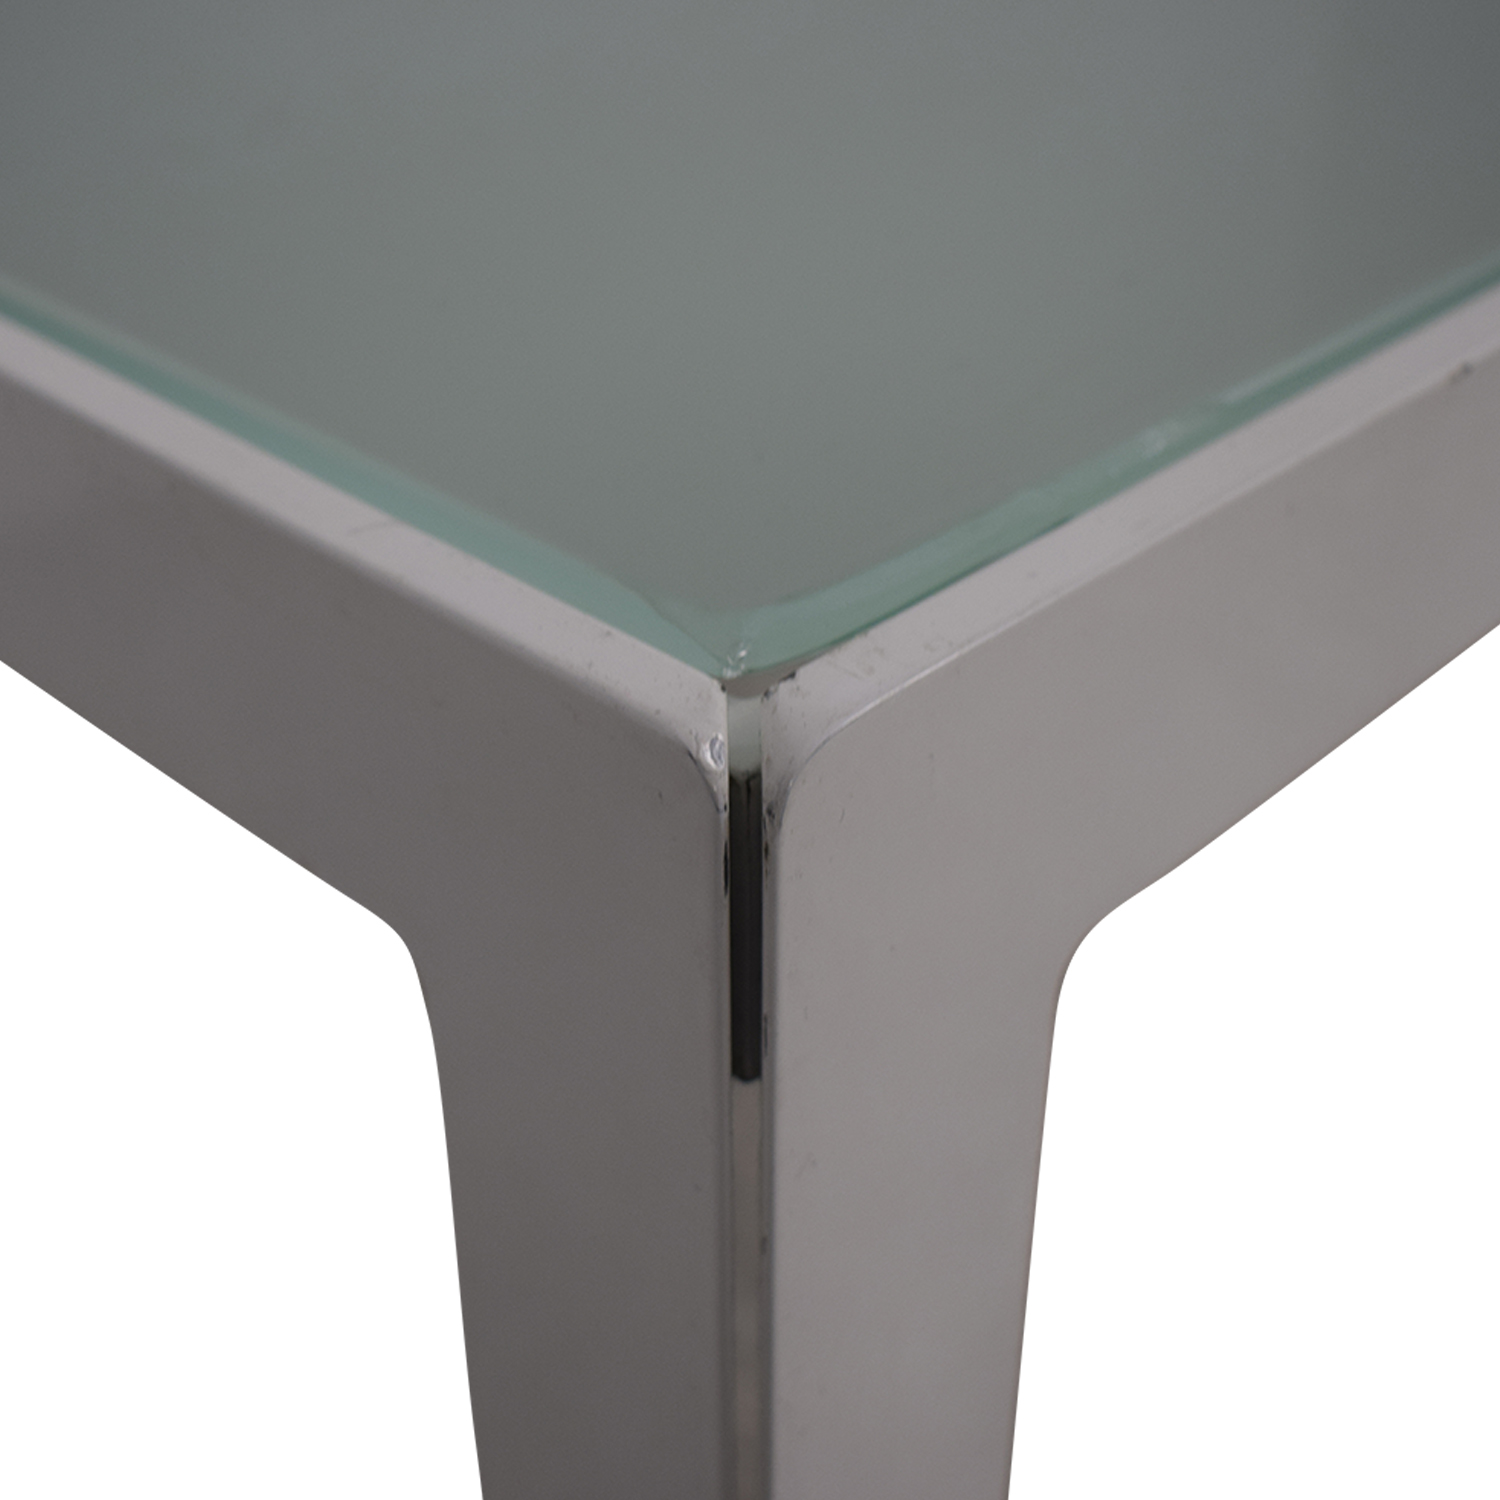 buy Monica Armani Monica Armani White and Glass Dining Table online